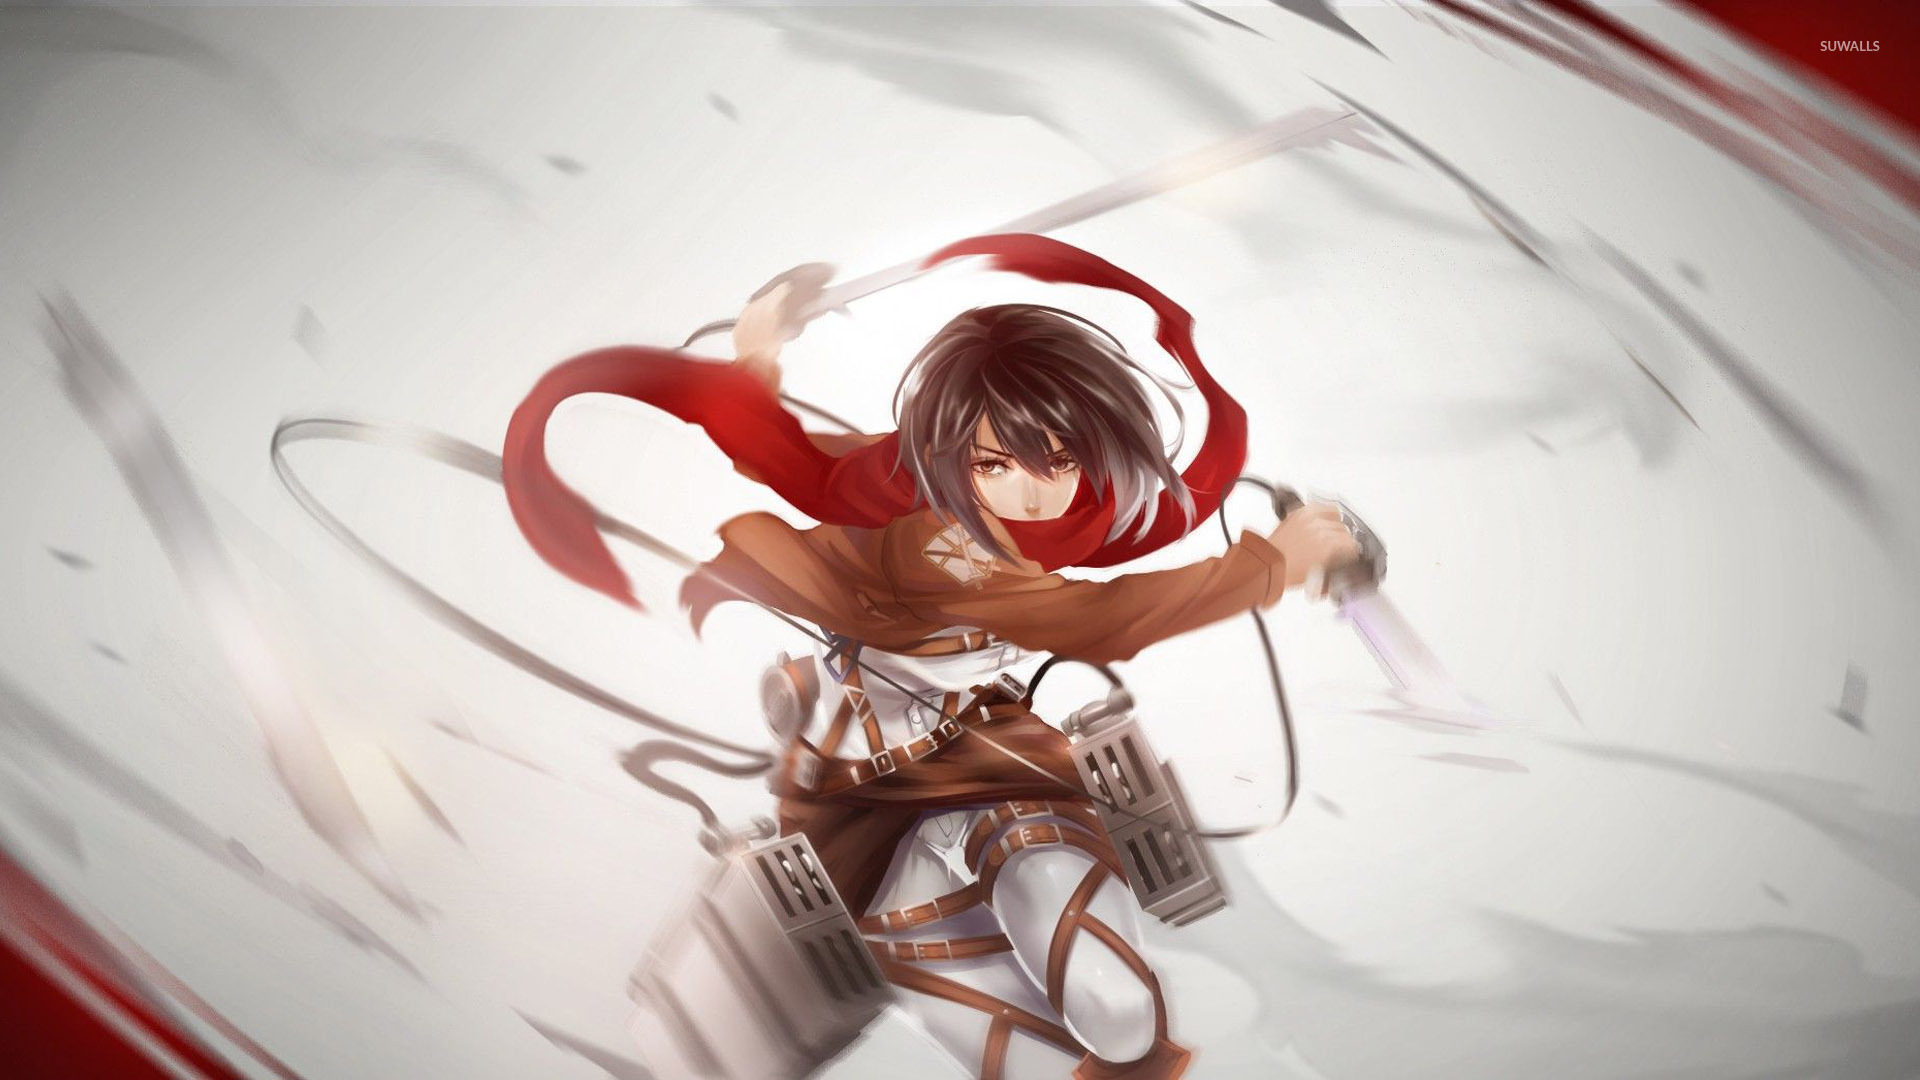 Mikasa Ackerman Attack On Titan Wallpaper Anime Wallpapers